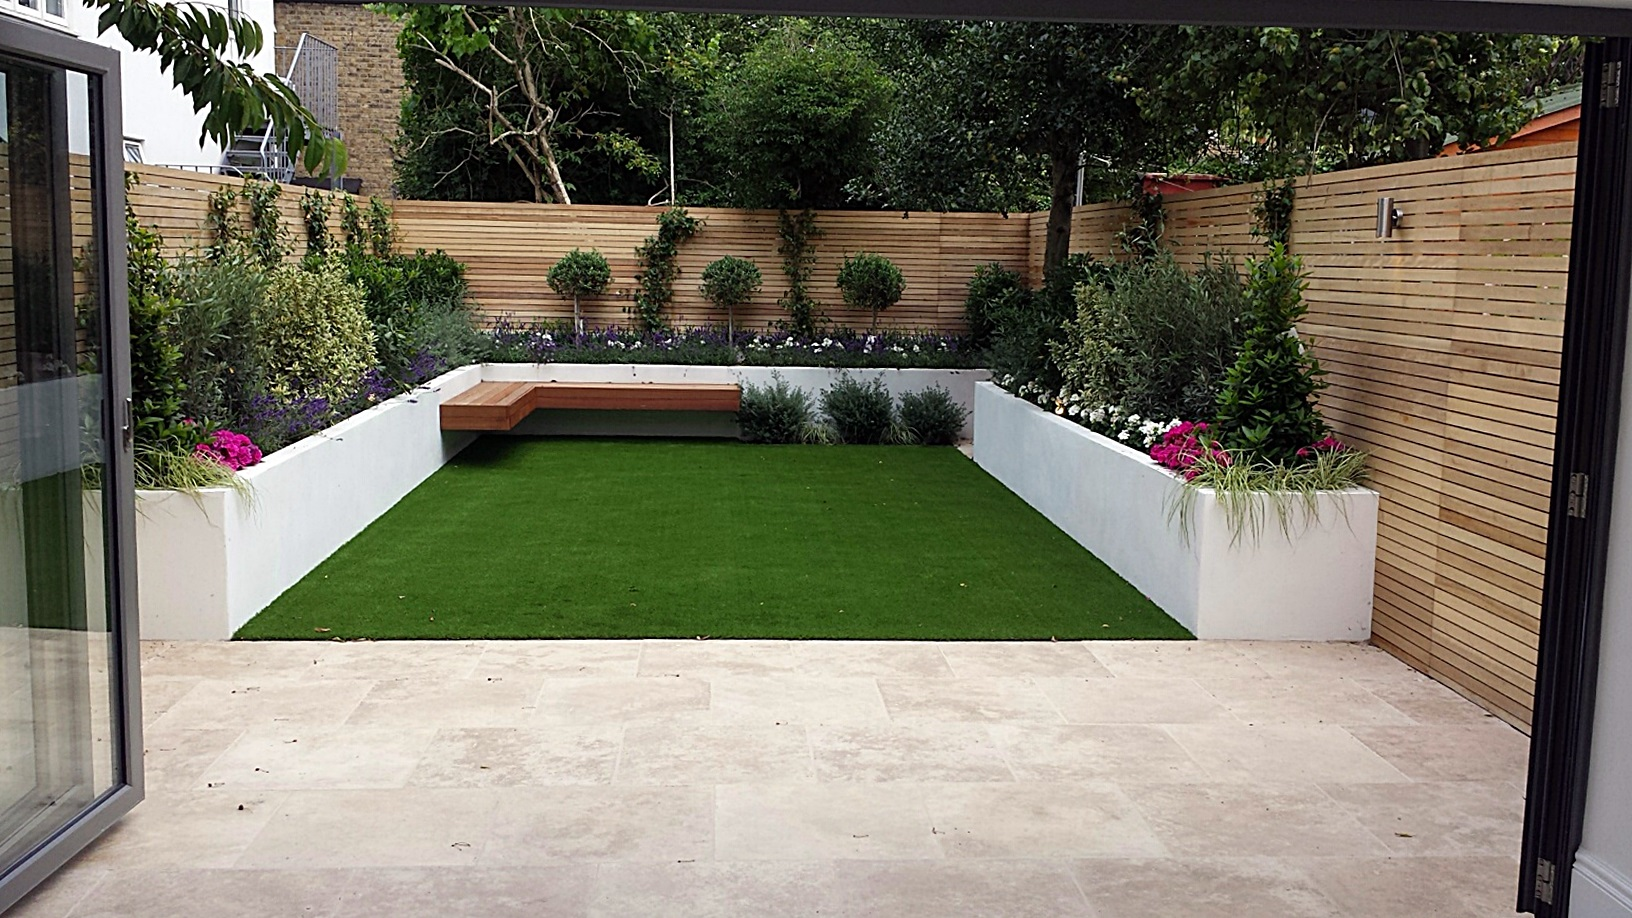 Gartengestaltung Ideen Japanisch Travertine Paving Patio Render Block Raised Beds Hardwood